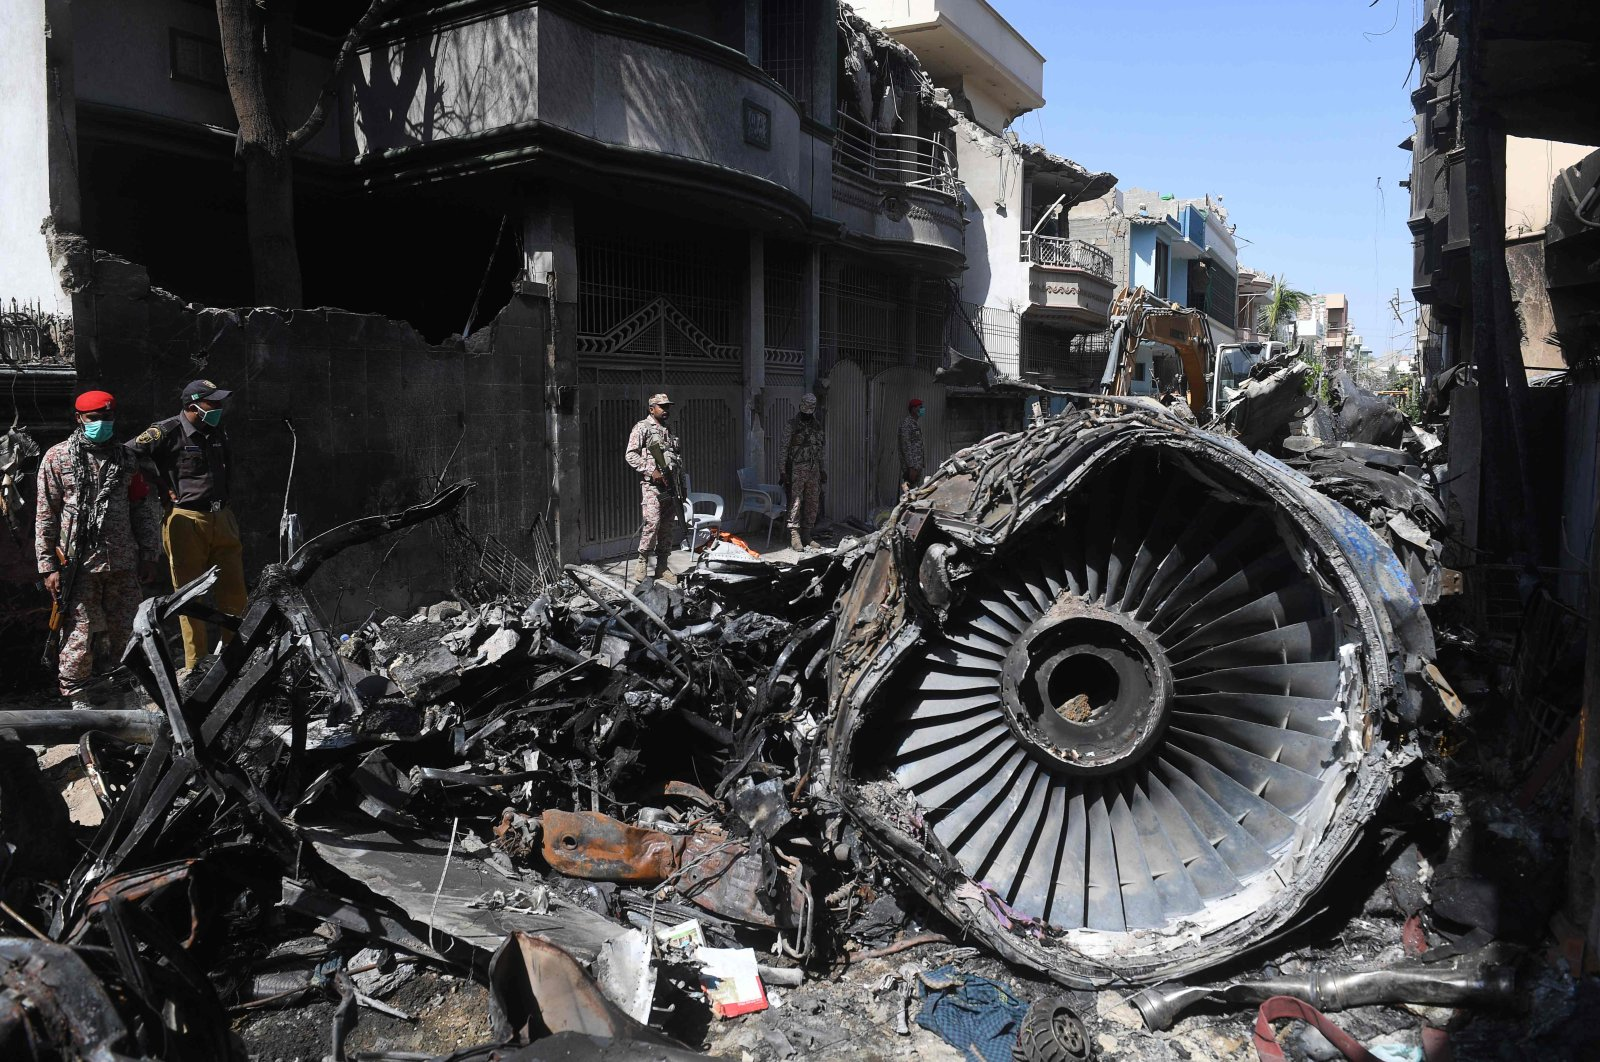 Security personnel stand beside the wreckage of a Pakistan International Airlines aircraft, in Karachi, Pakistan, May 24, 2020. (AFP Photo)